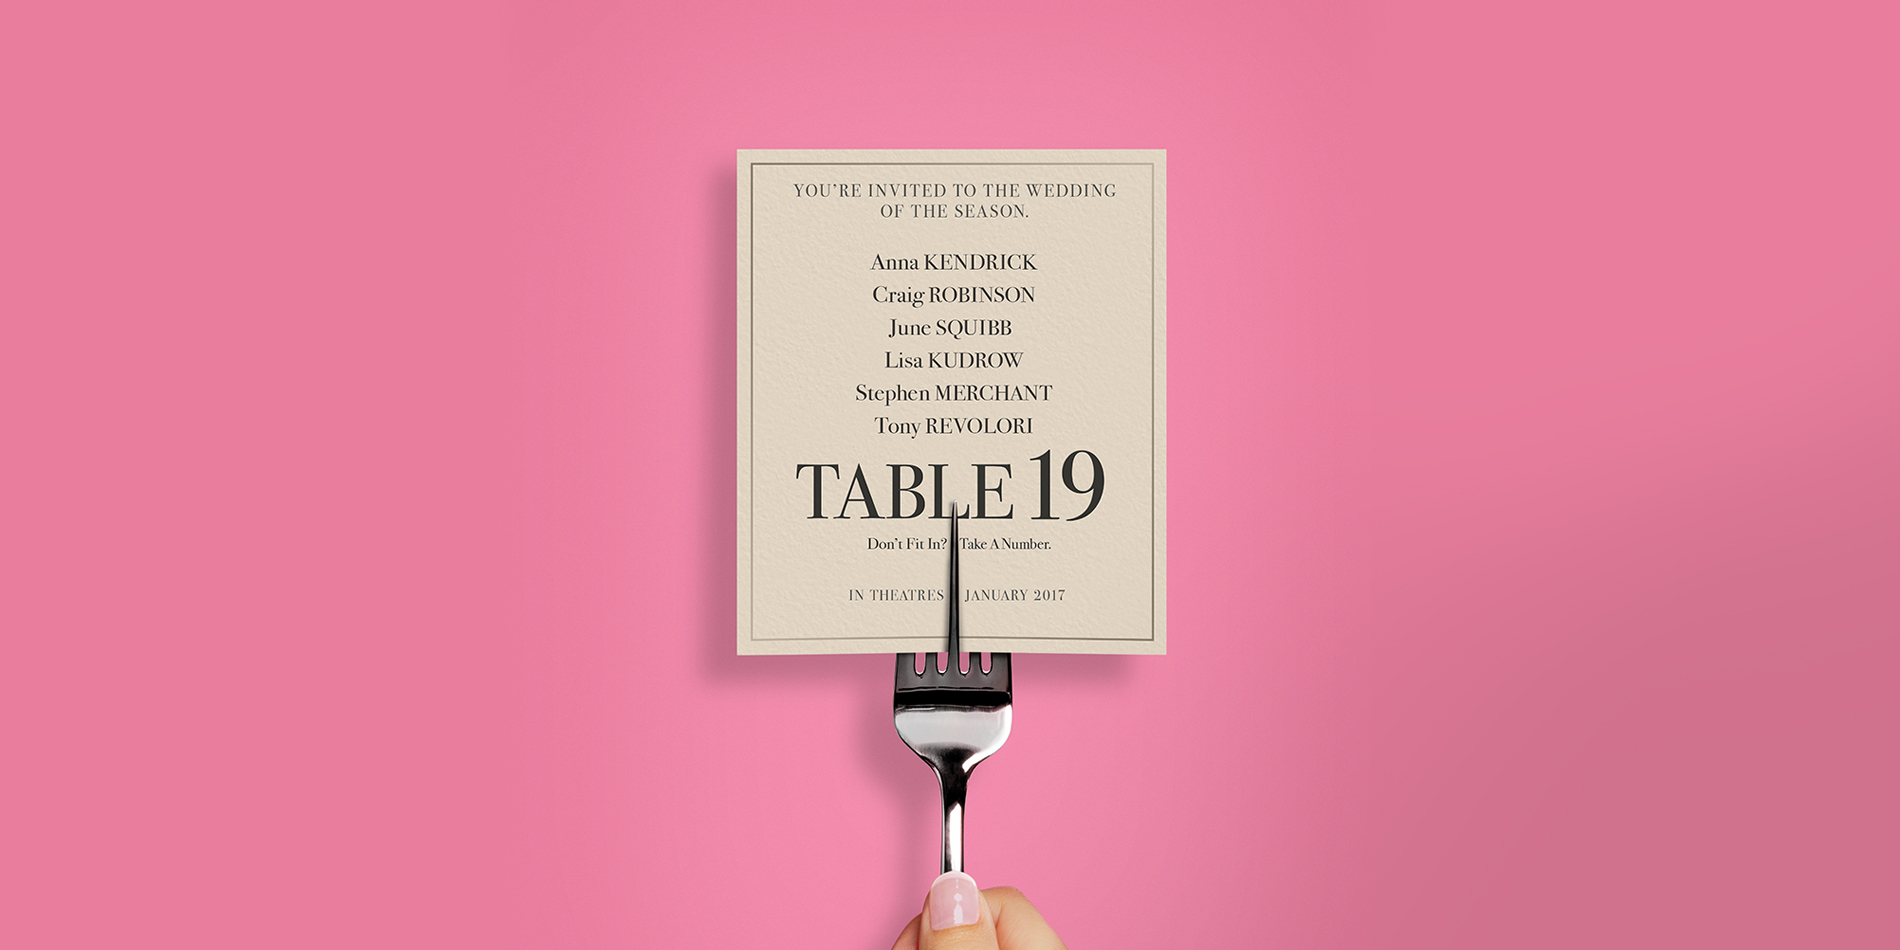 Table 19 review a who 39 s who of wedding weirdos we live for Table 19 review